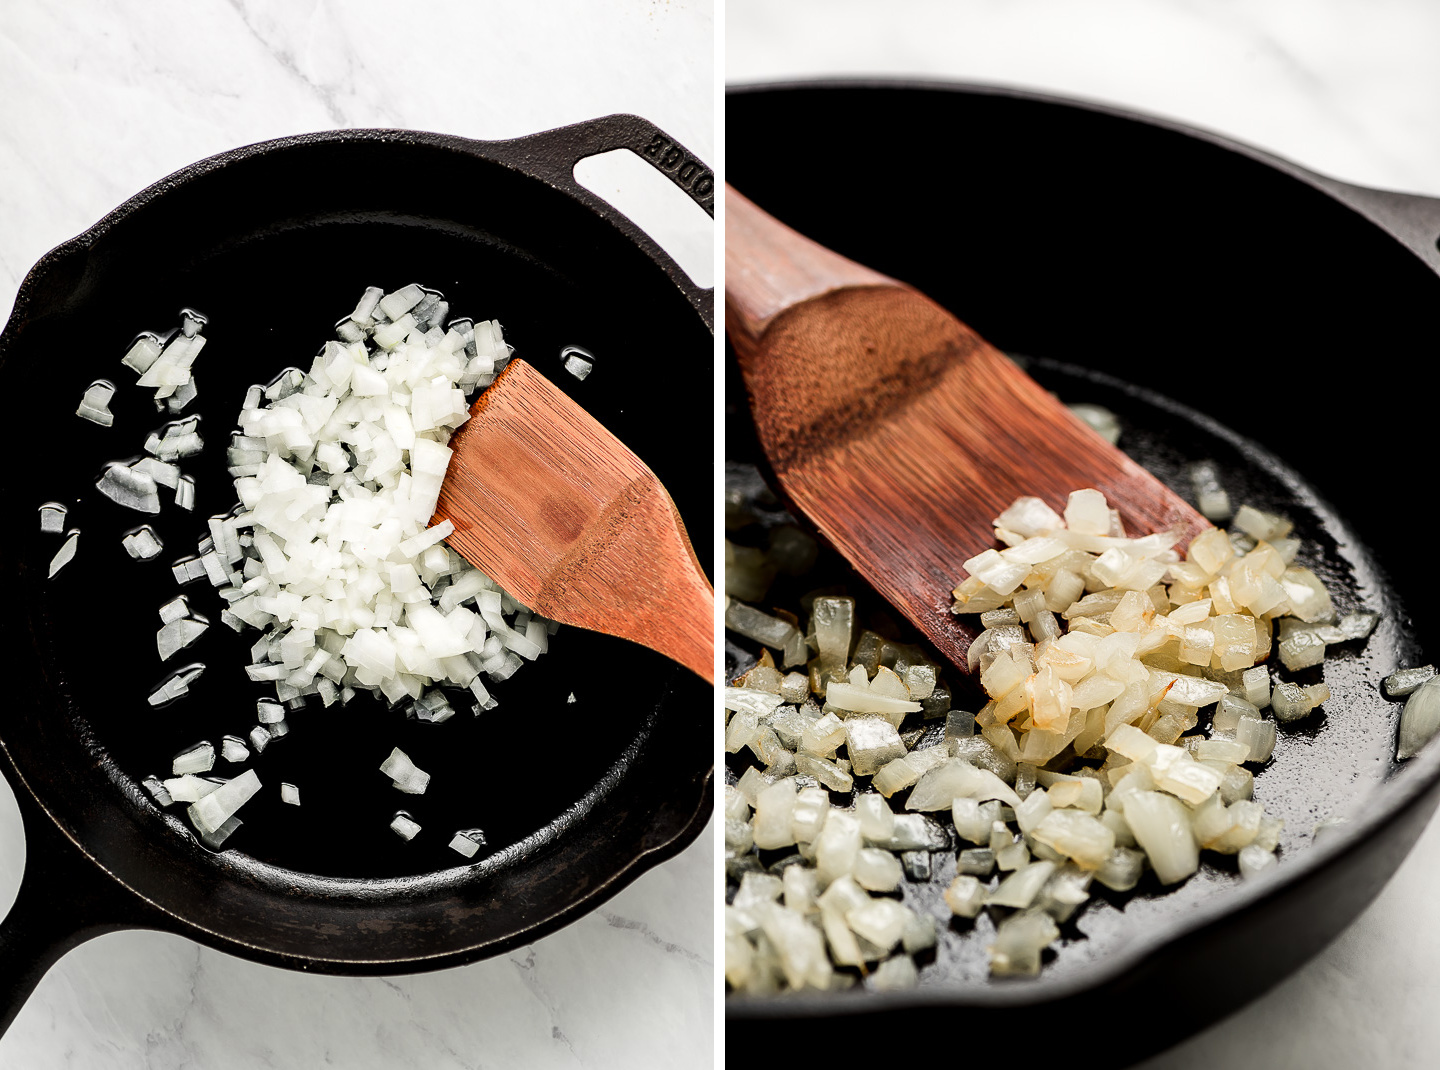 A cast iron skillet with raw onions; cooked, translucent onions in a skillet.